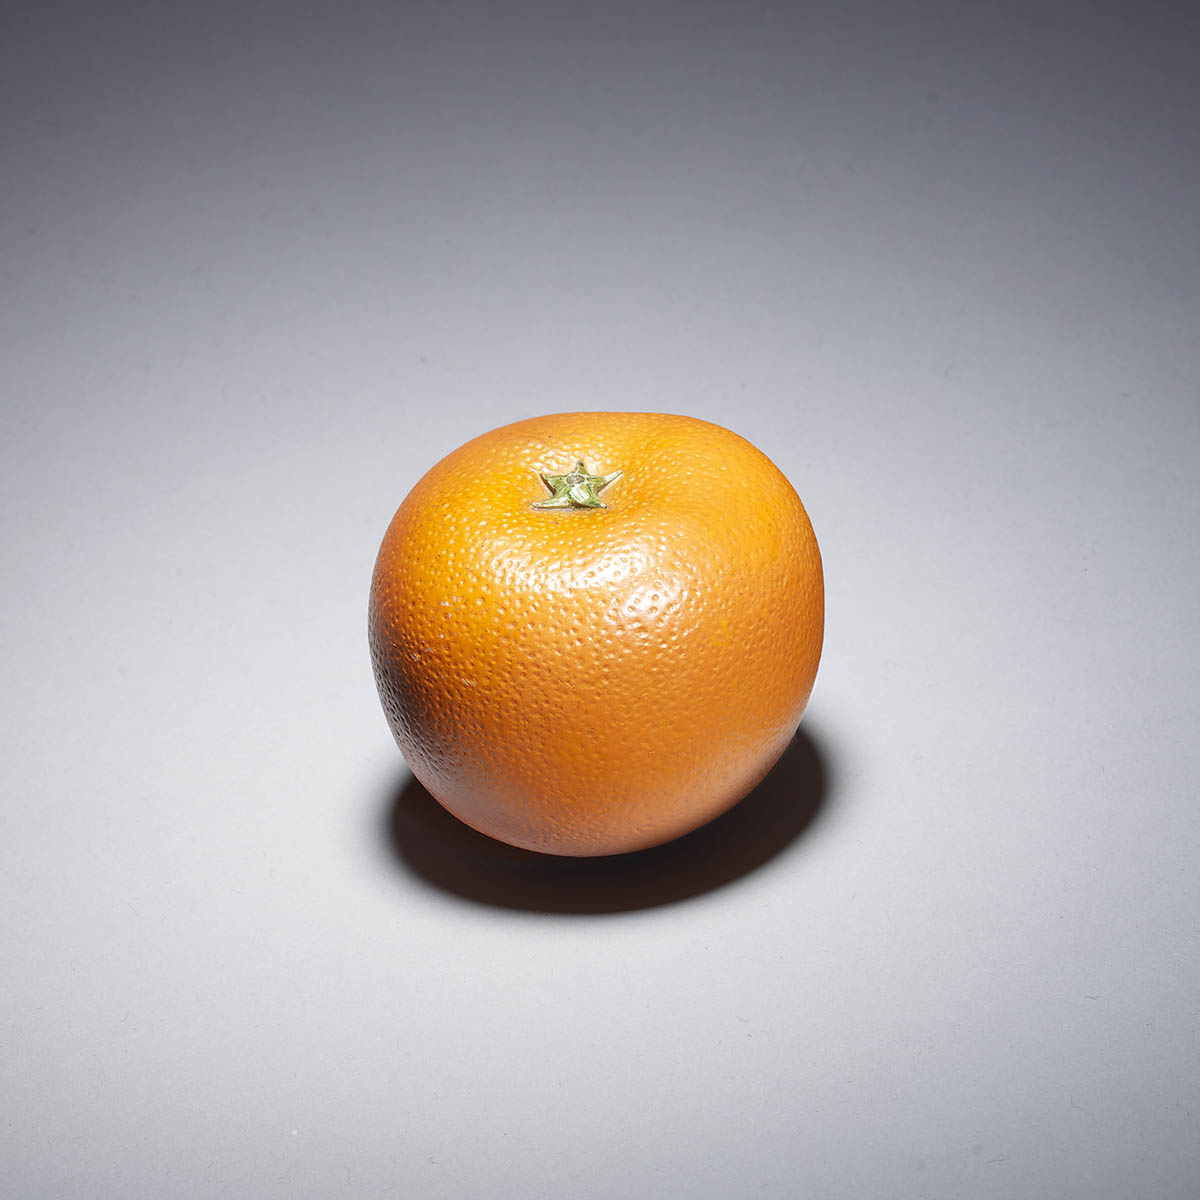 Ivory okimono of an orange